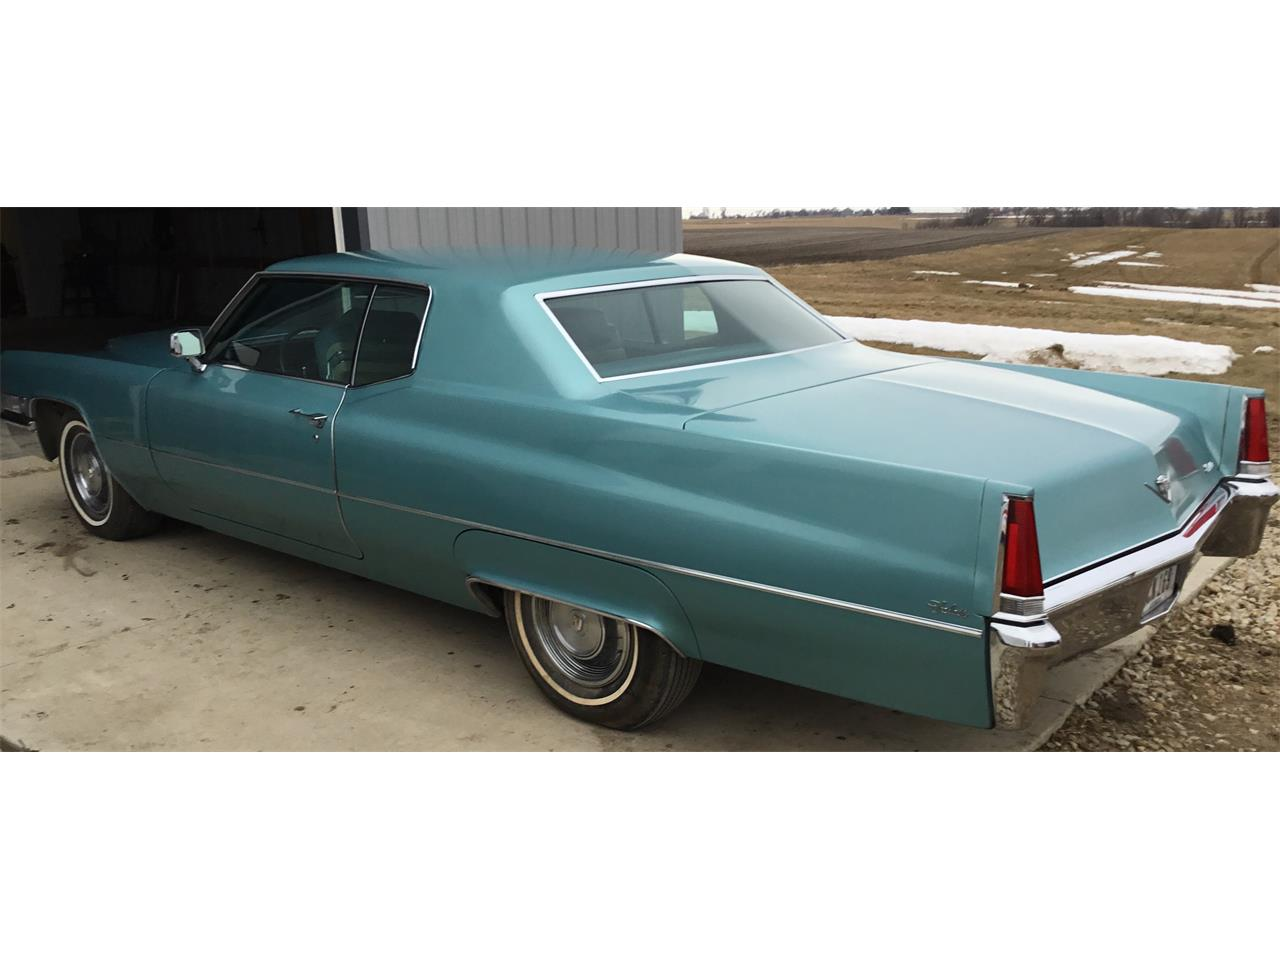 1969 Cadillac Calais (CC-1199373) for sale in Panora, Iowa